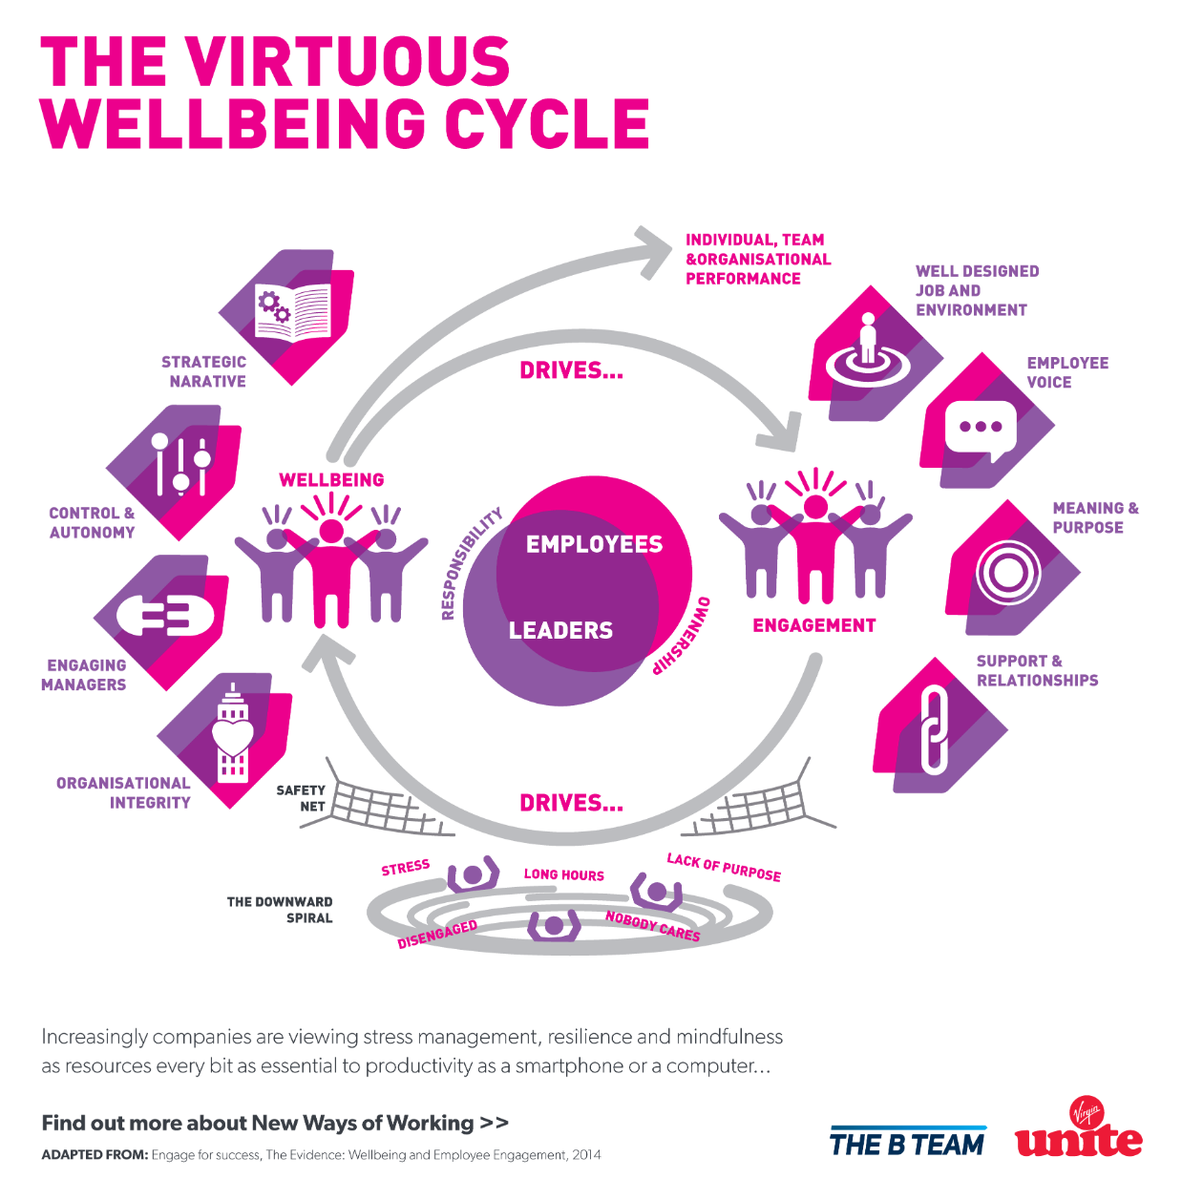 5 things we need to know about the future of work http://t.co/BLTIlSJQ31 #readbyrichard http://t.co/gsMRmgwJMh